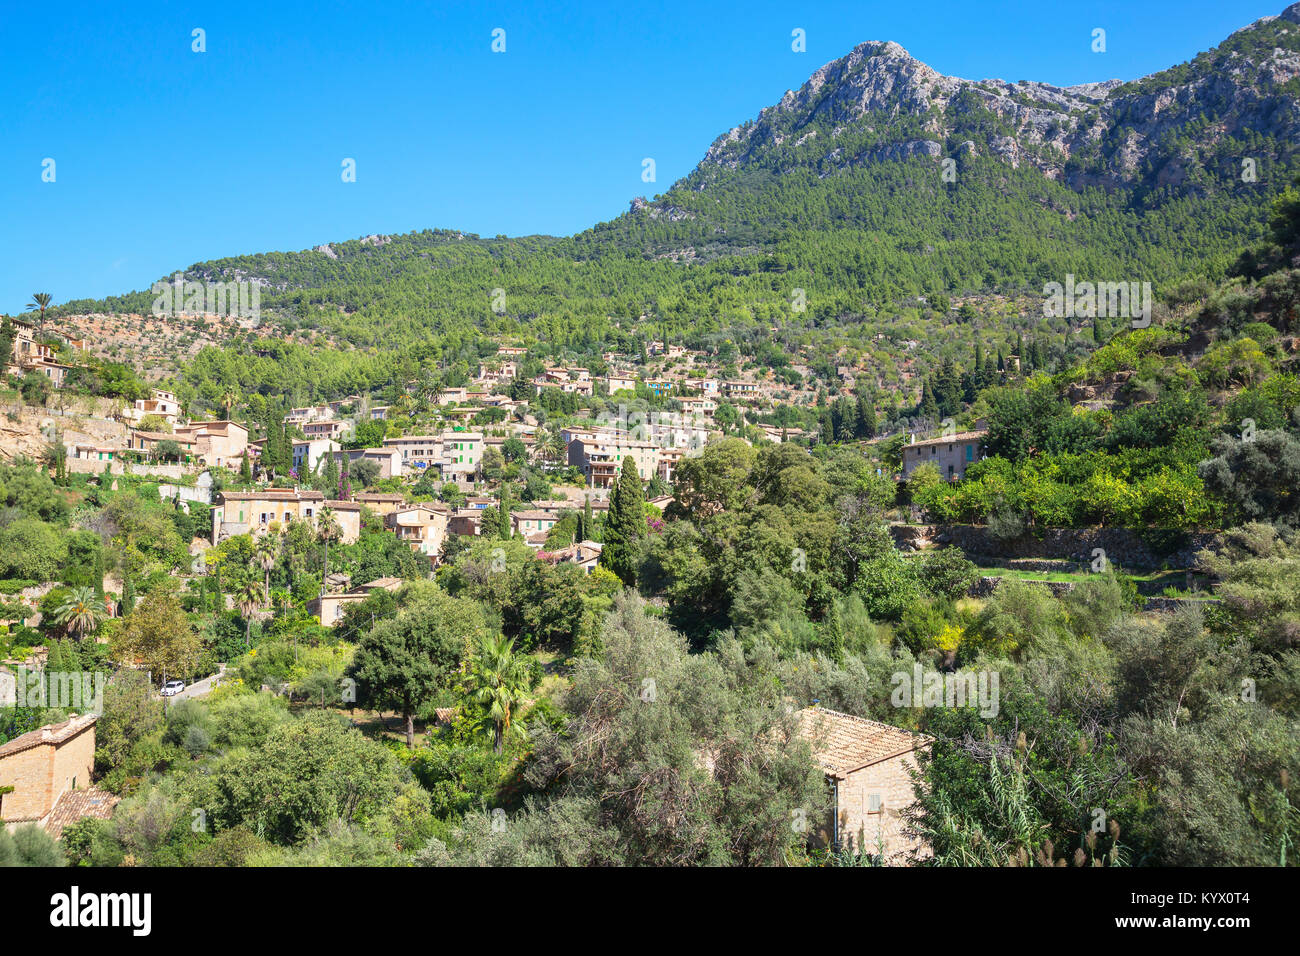 Deia village, Deia, Mallorca, Balearic Islands, Spain, Europe - Stock Image